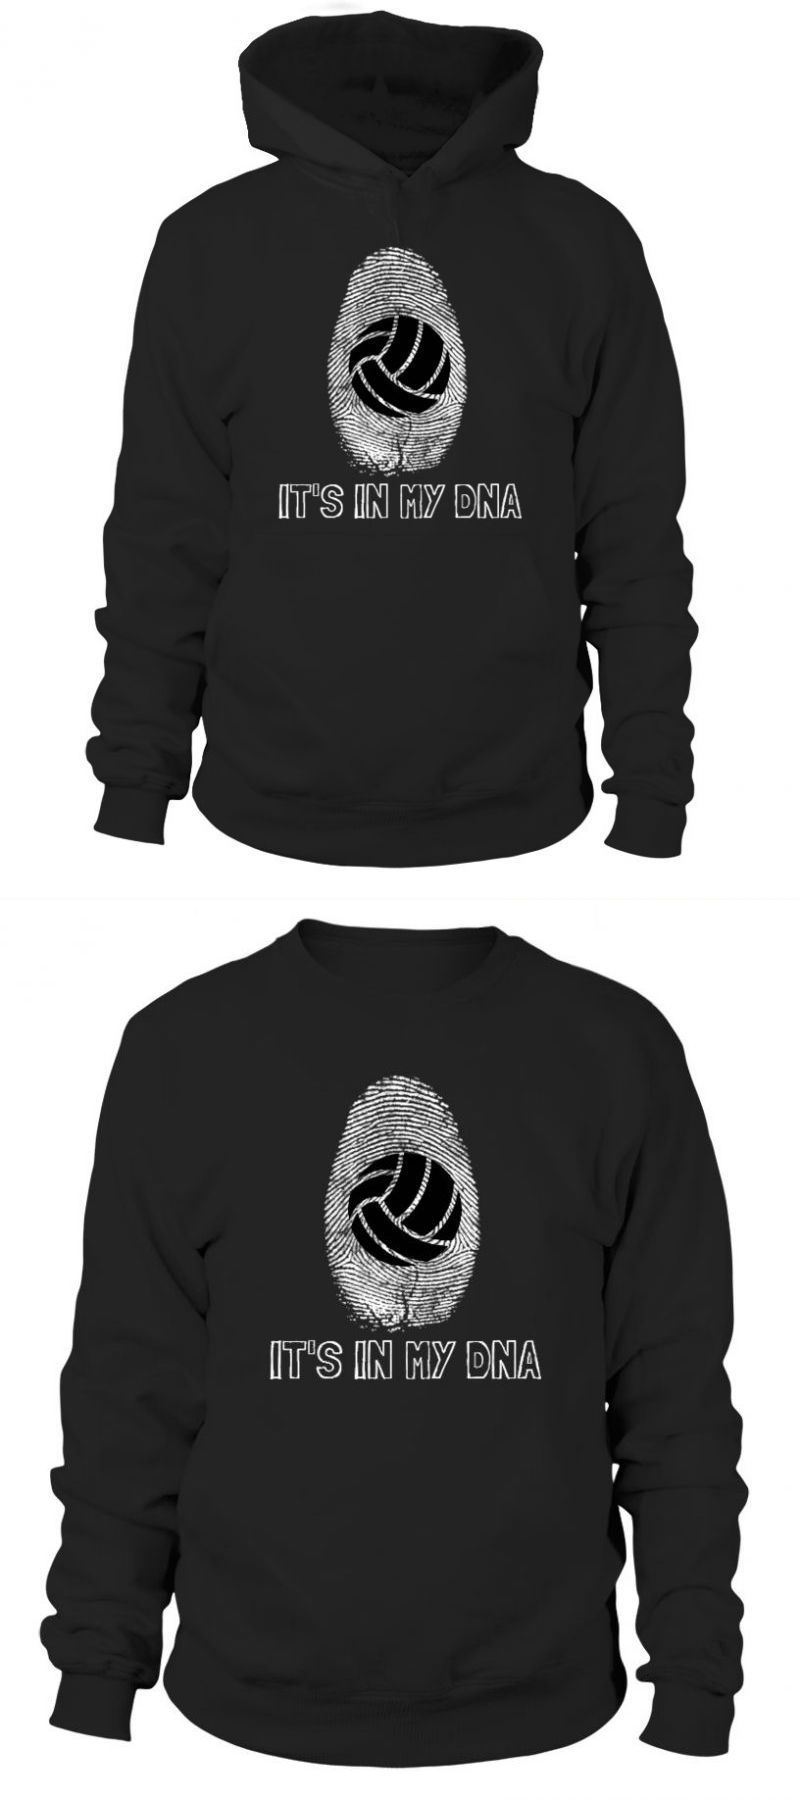 Volleyball Tshirt Designs Sports Volleyball In My Dna Volleyball Aunt T Shirt Volleyball Tshirt D Volleyball Tshirt Designs Volleyball Tshirts Aunt T Shirts